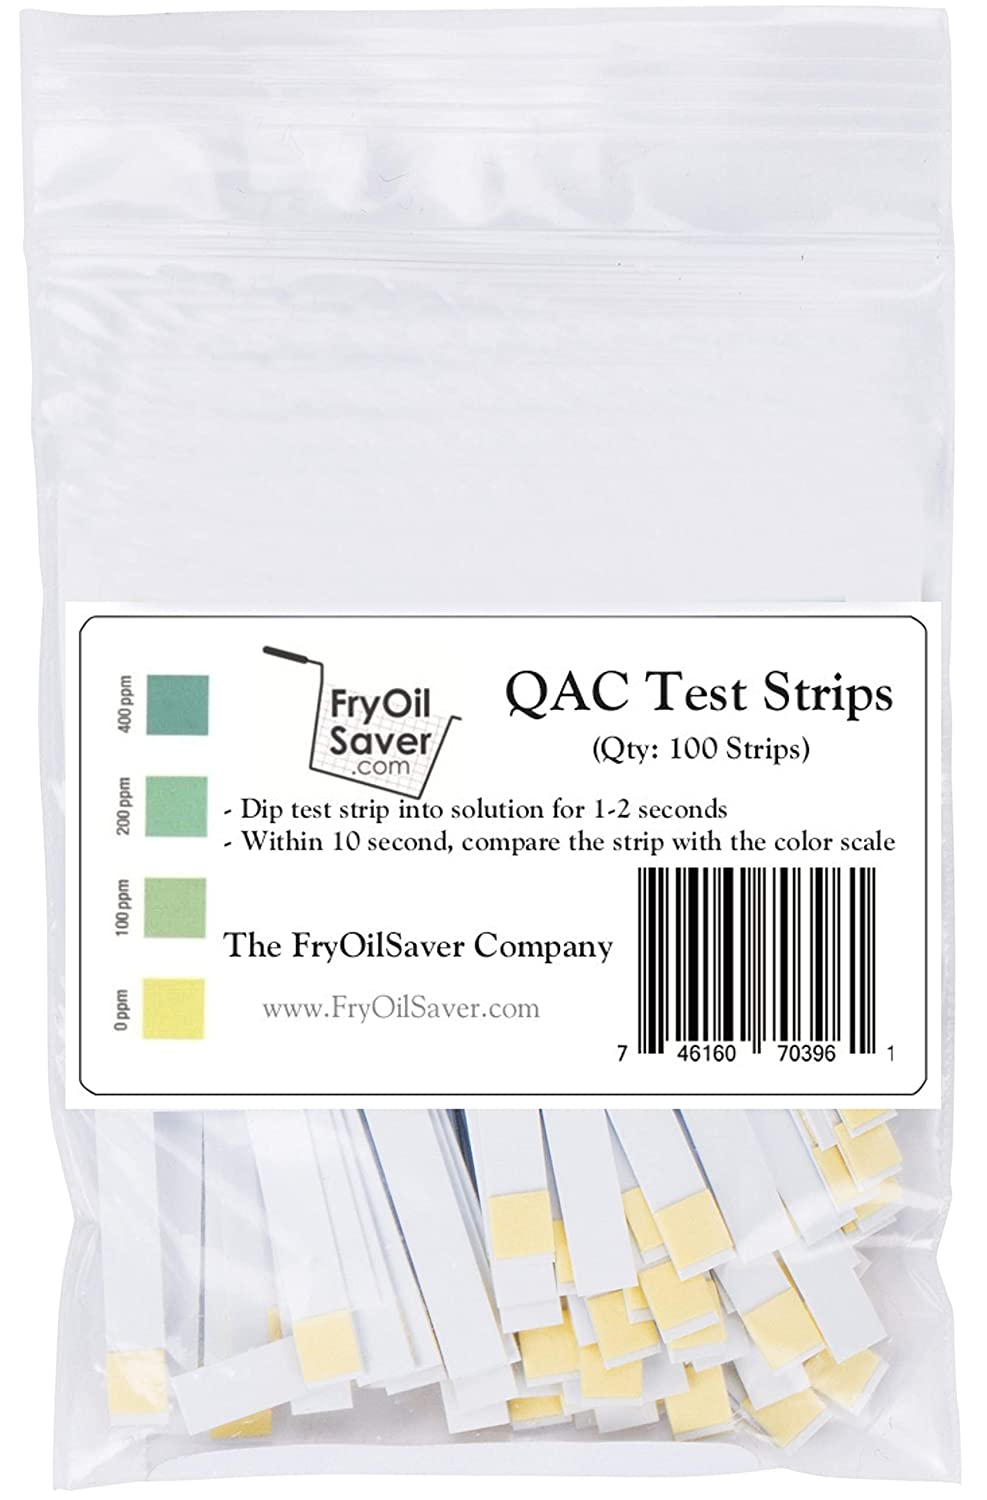 FryOilSaver, QAC Test Strips, Restaurant Quaternary Ammonium Sanitizer Test Strips, 0-400 ppm, Multi Quat Strips for Food Service, Quaternary Ammonia Sanitizer Strips, FMP 142-1363, Pack of 100